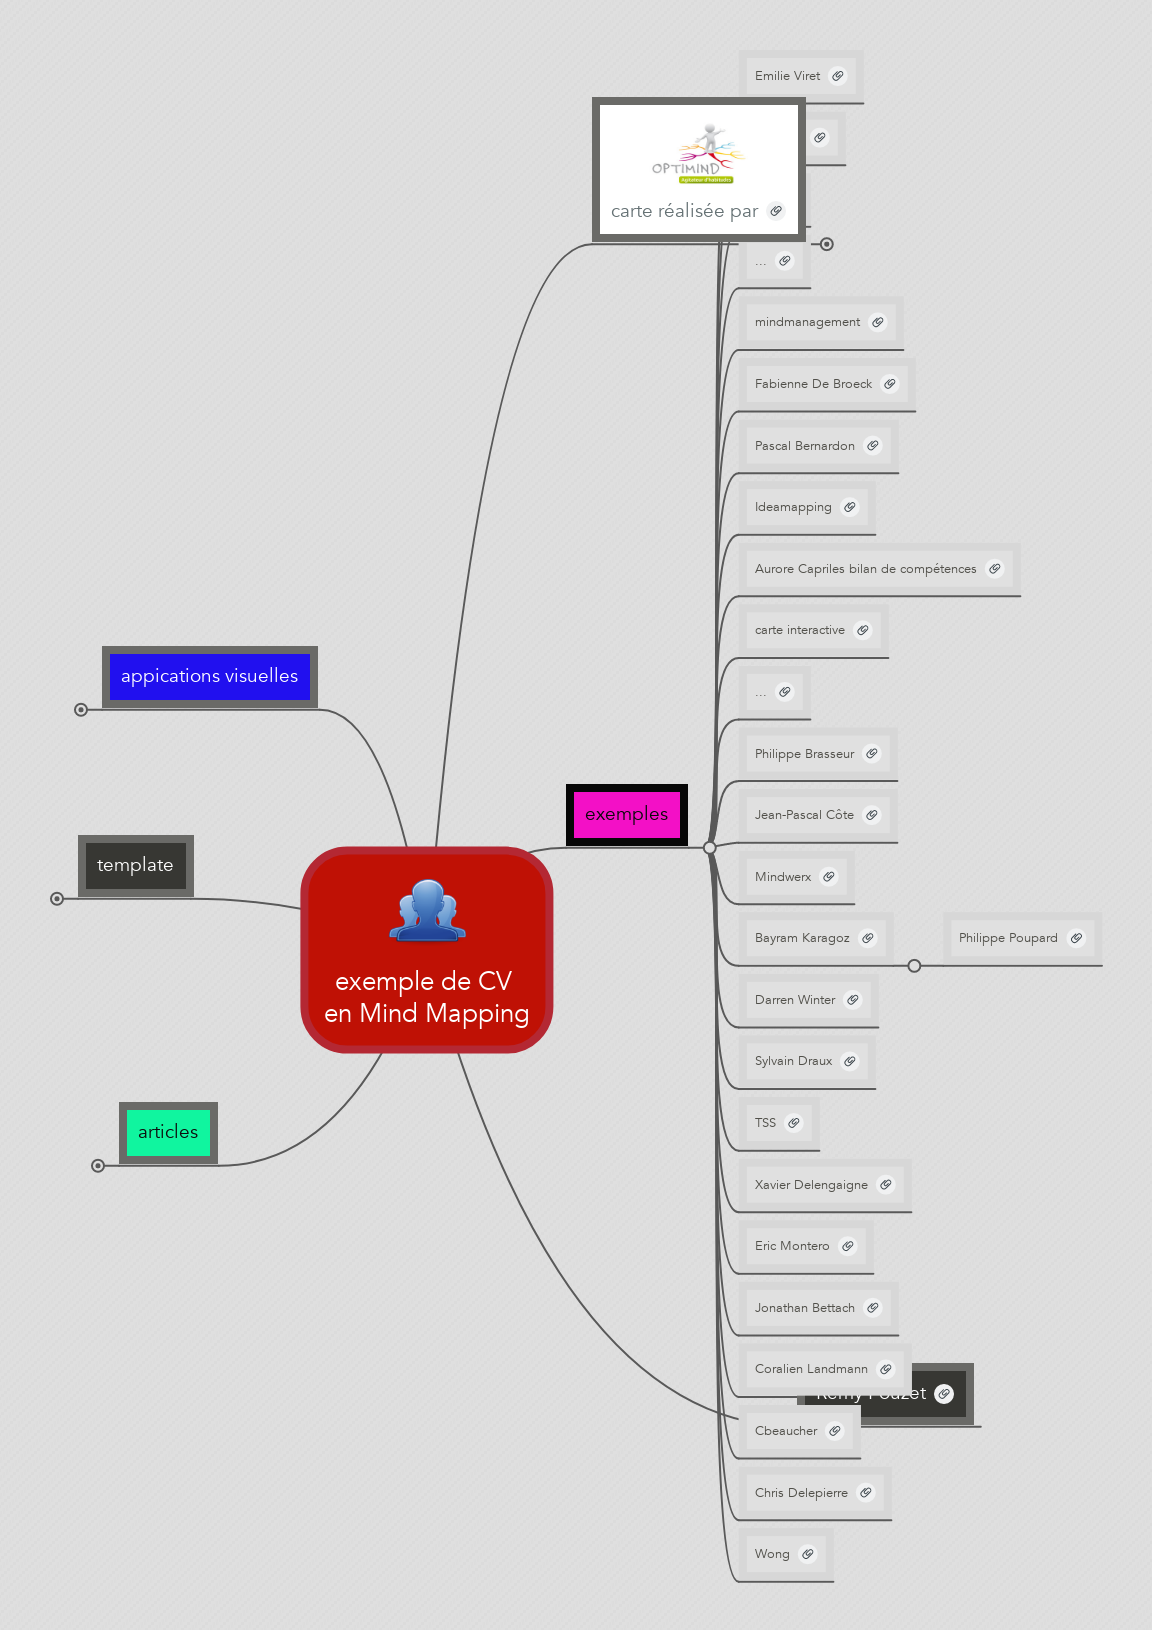 exemple de cv en mind mapping